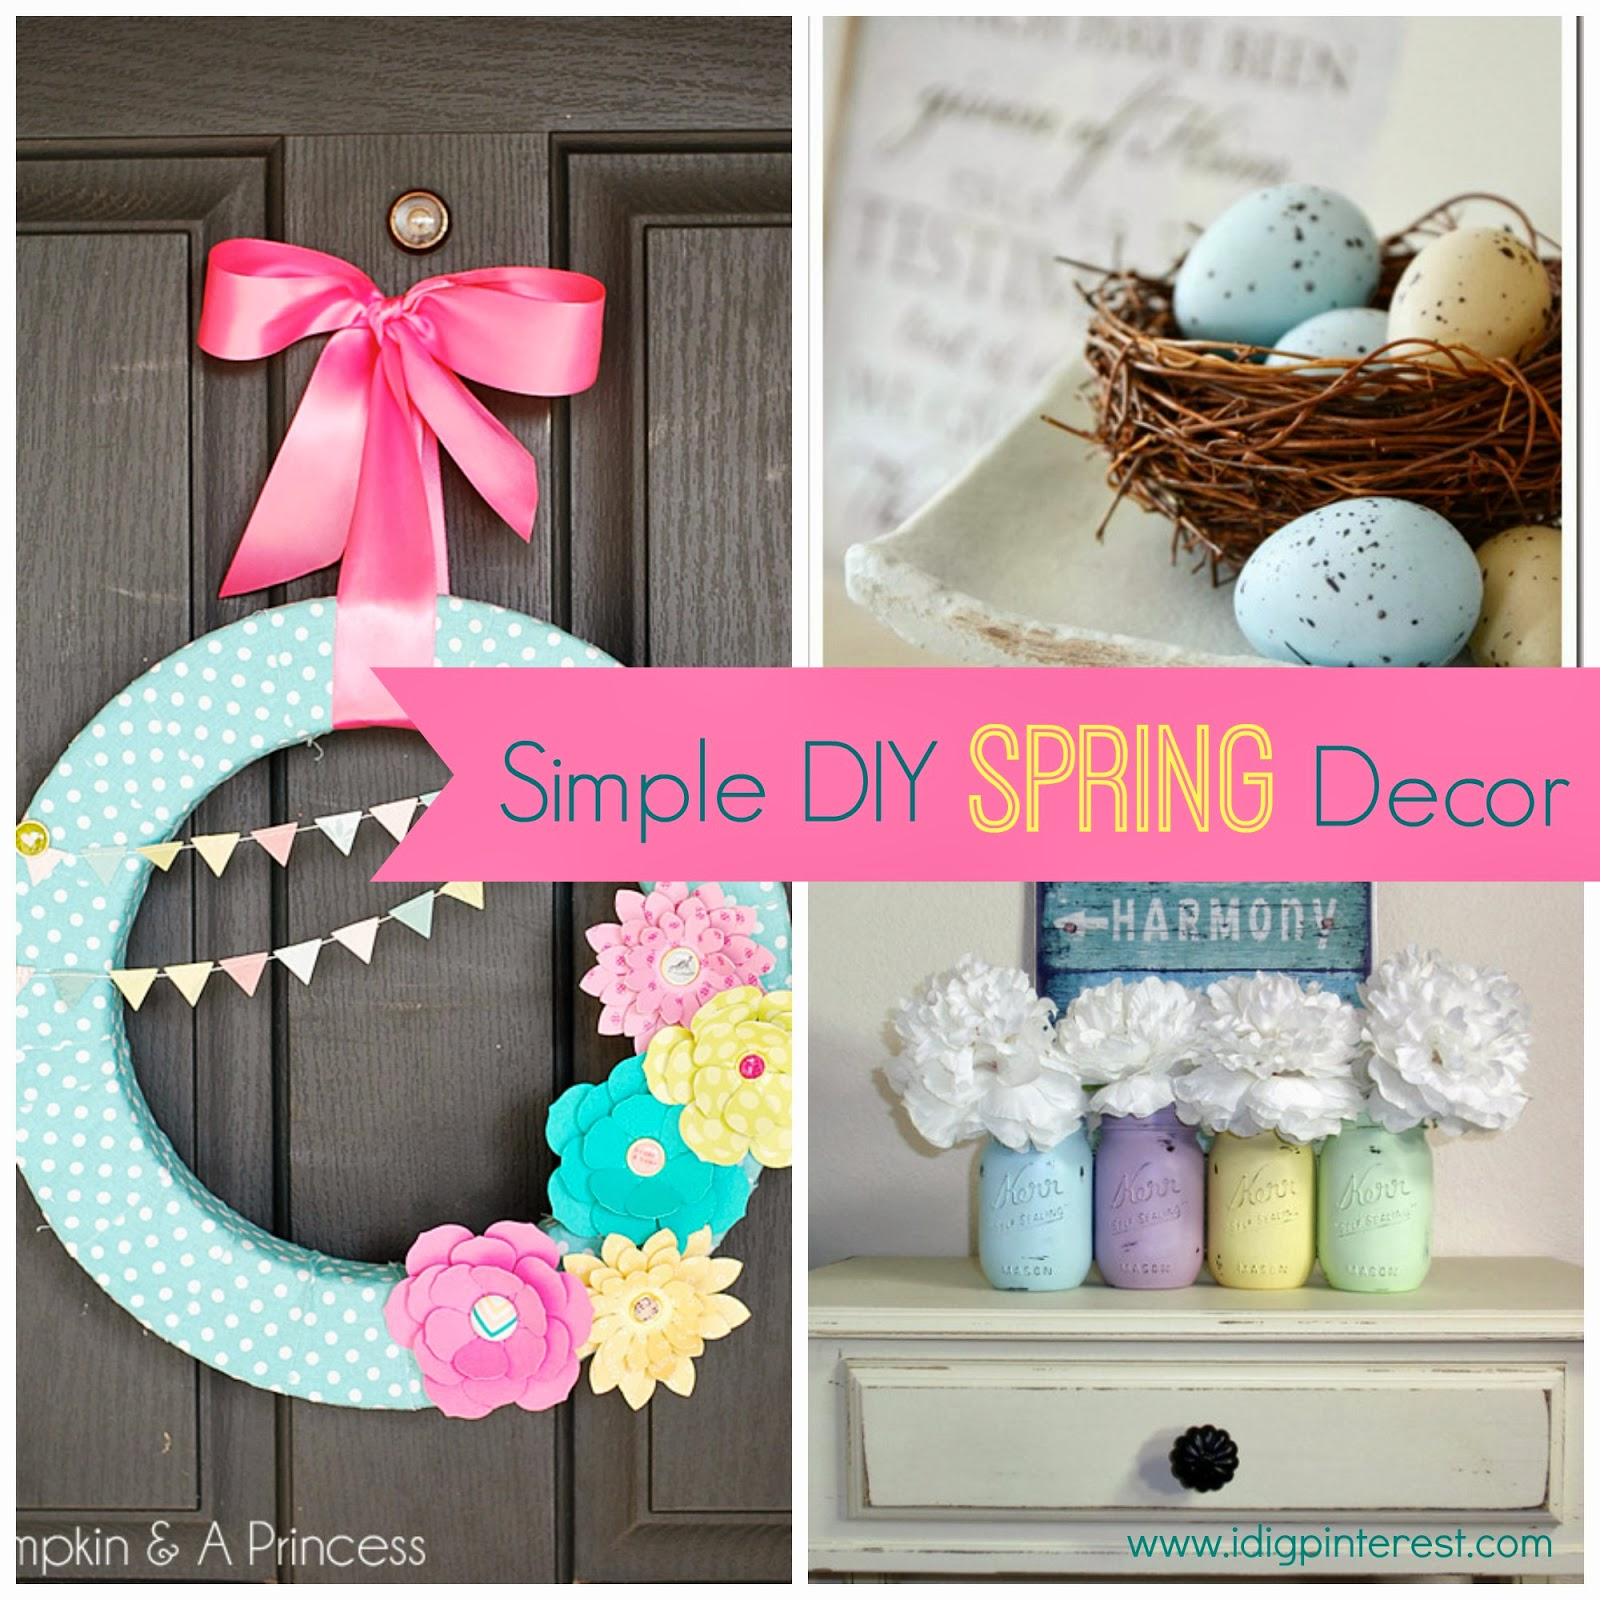 Spring Home Decor Design Ideas: Simple DIY Spring Decor Ideas